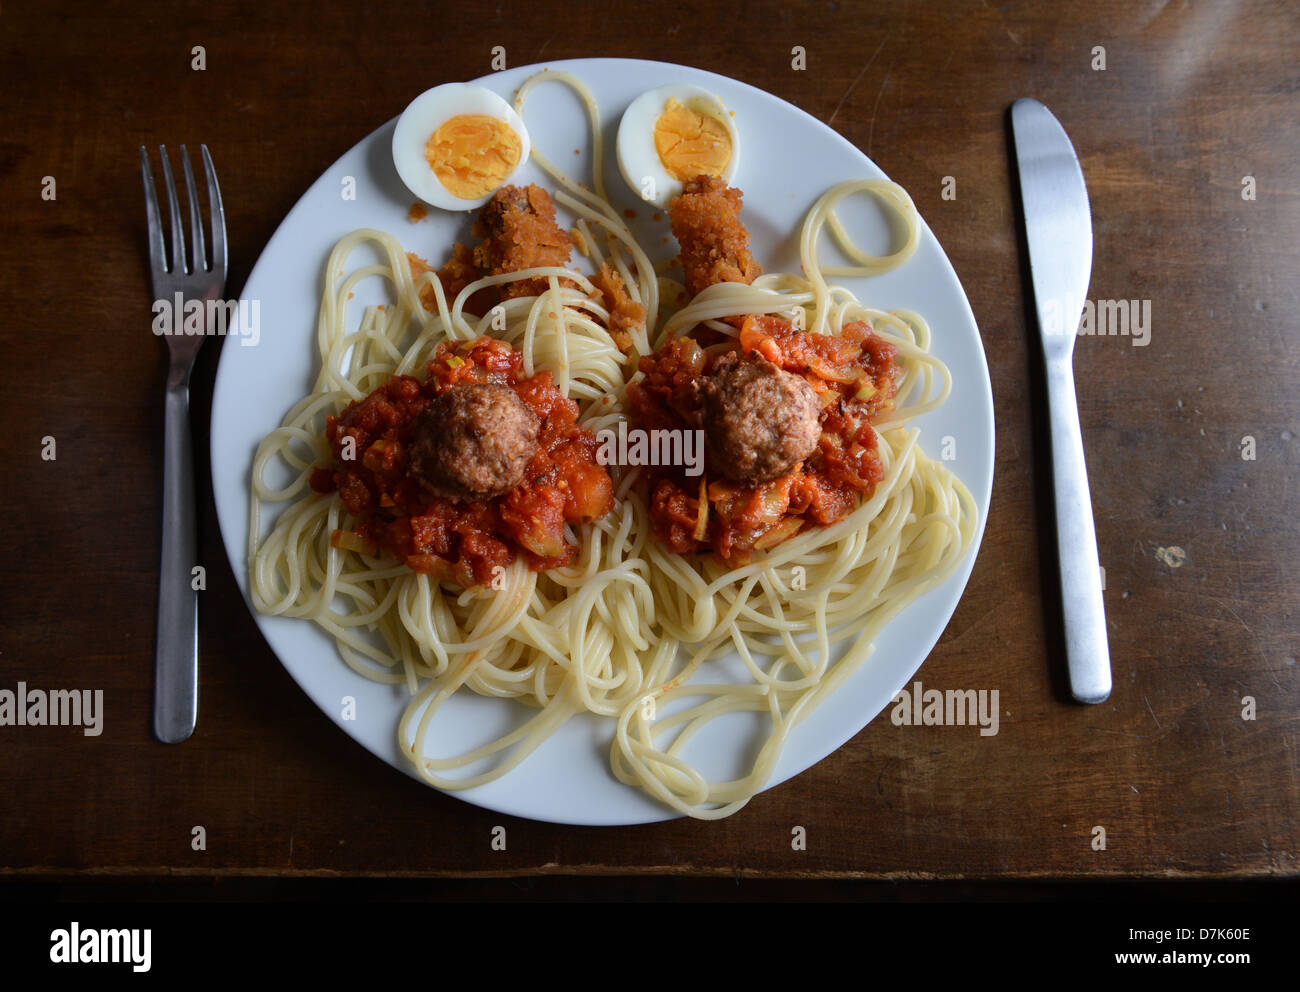 Templin, Germany, plates with stylized Spaghetti Monster - Stock Image